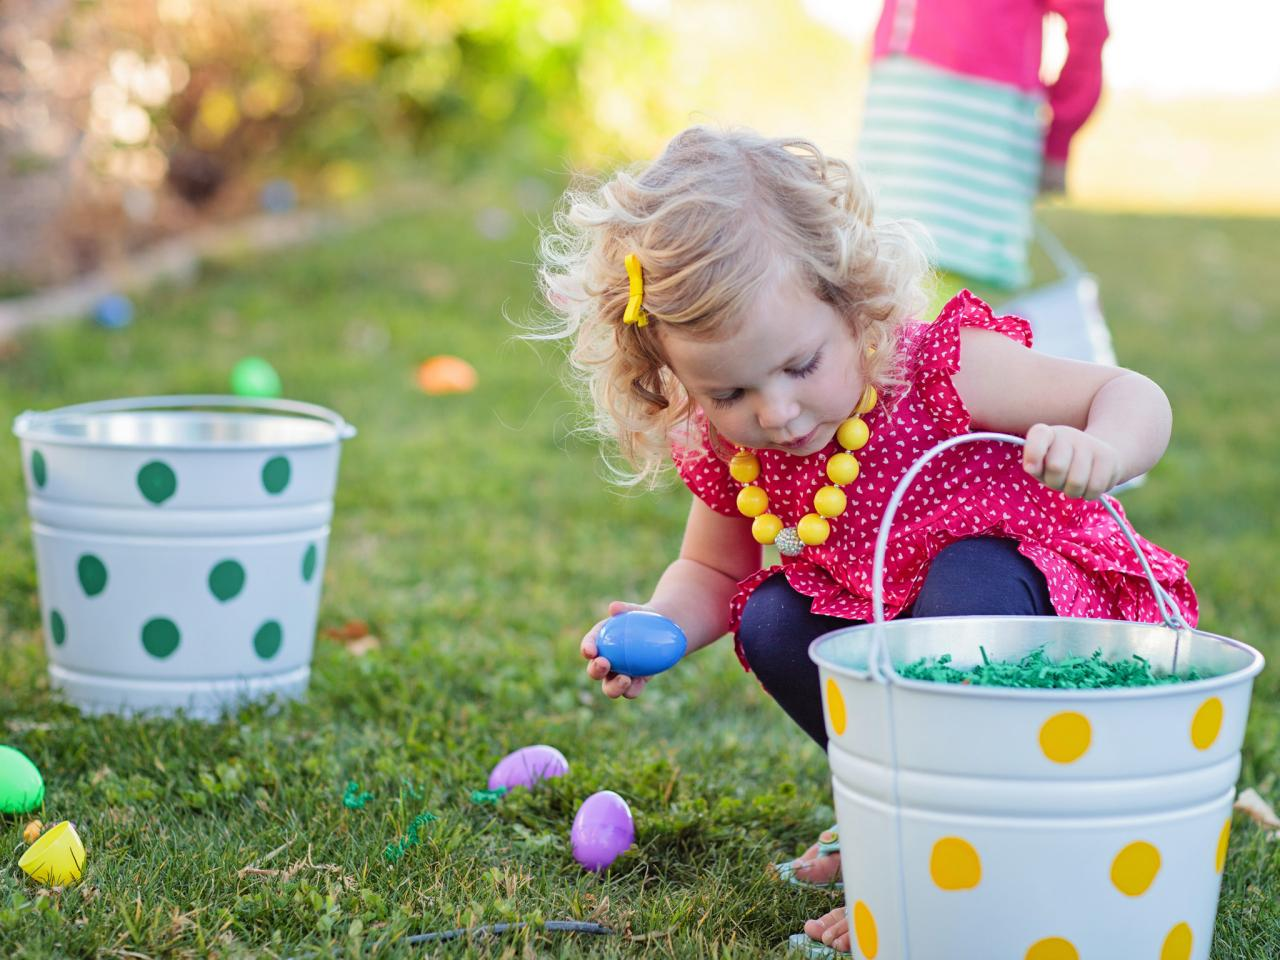 One of the most exciting parts of Easter Sunday is the anticipated Easter Egg Hunt. Easter Egg Hunts are a tradition I know many families cherish every Easter time. Here are some of my favourite Easter Egg Hunt tips.